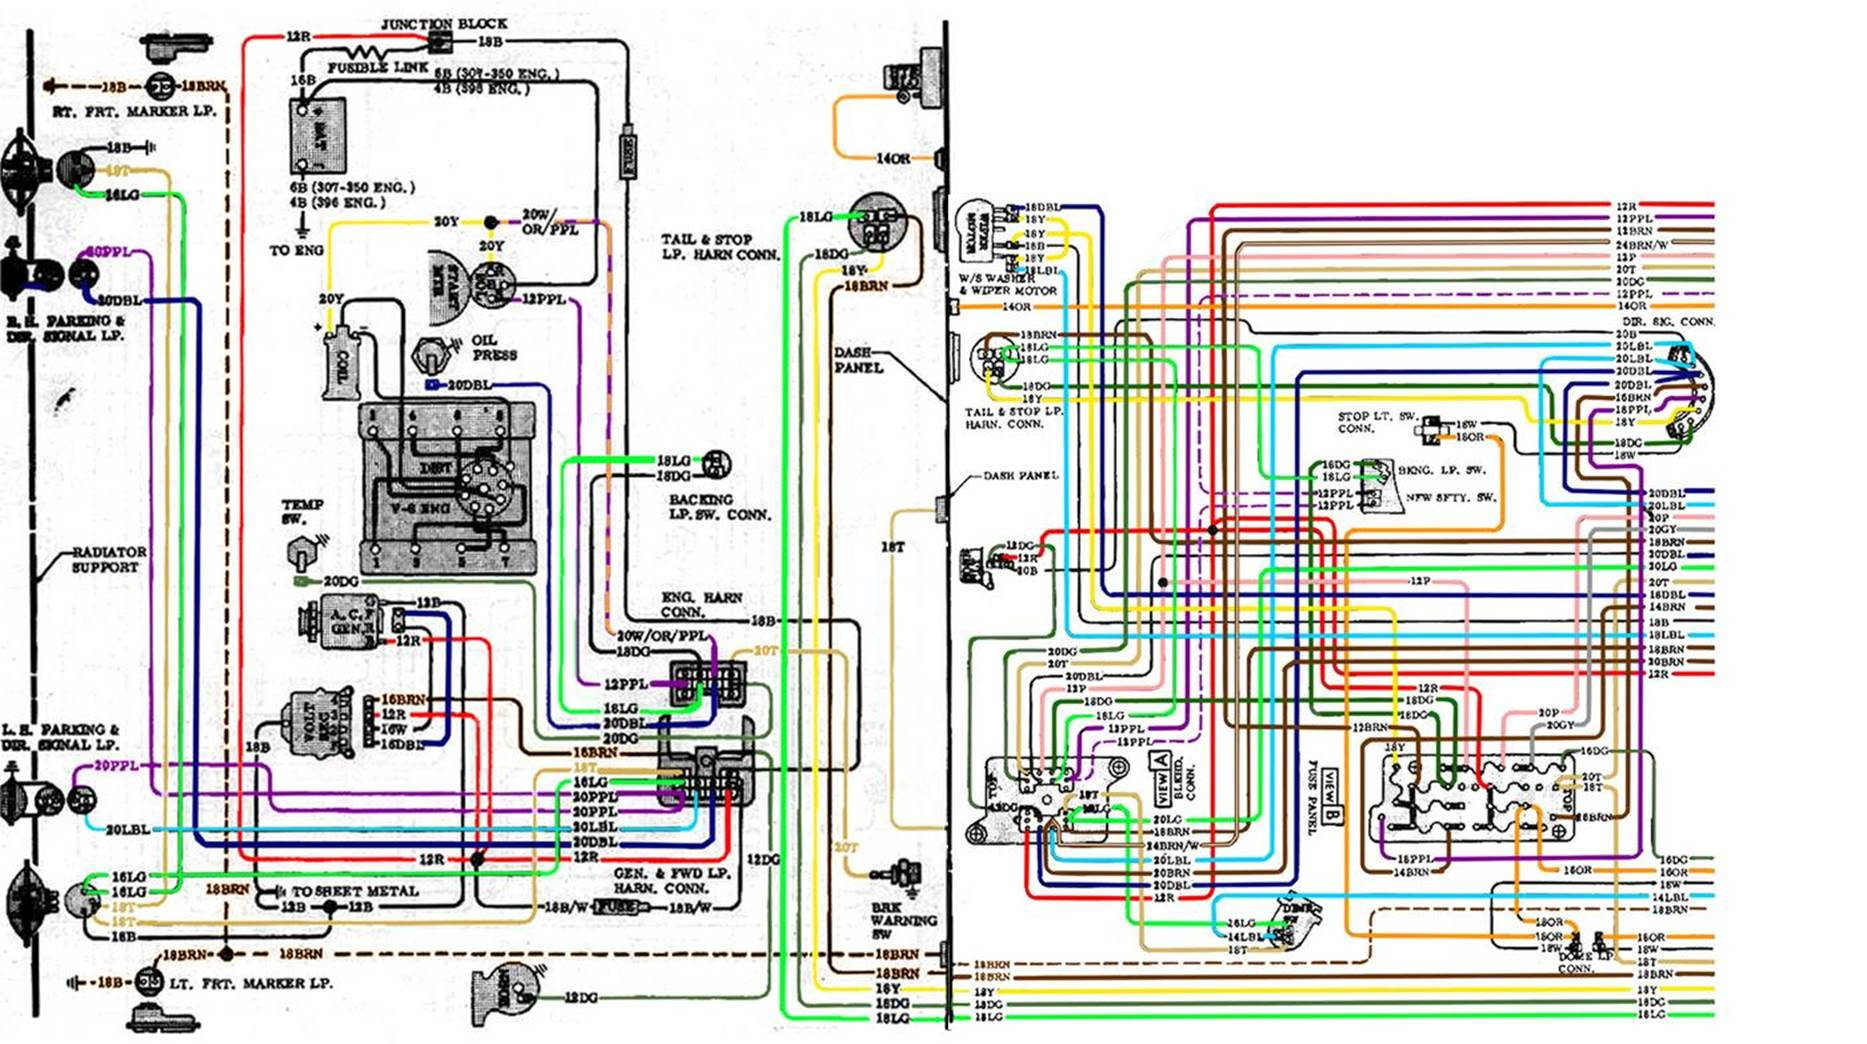 image002 67 72 chevy wiring diagram  at edmiracle.co